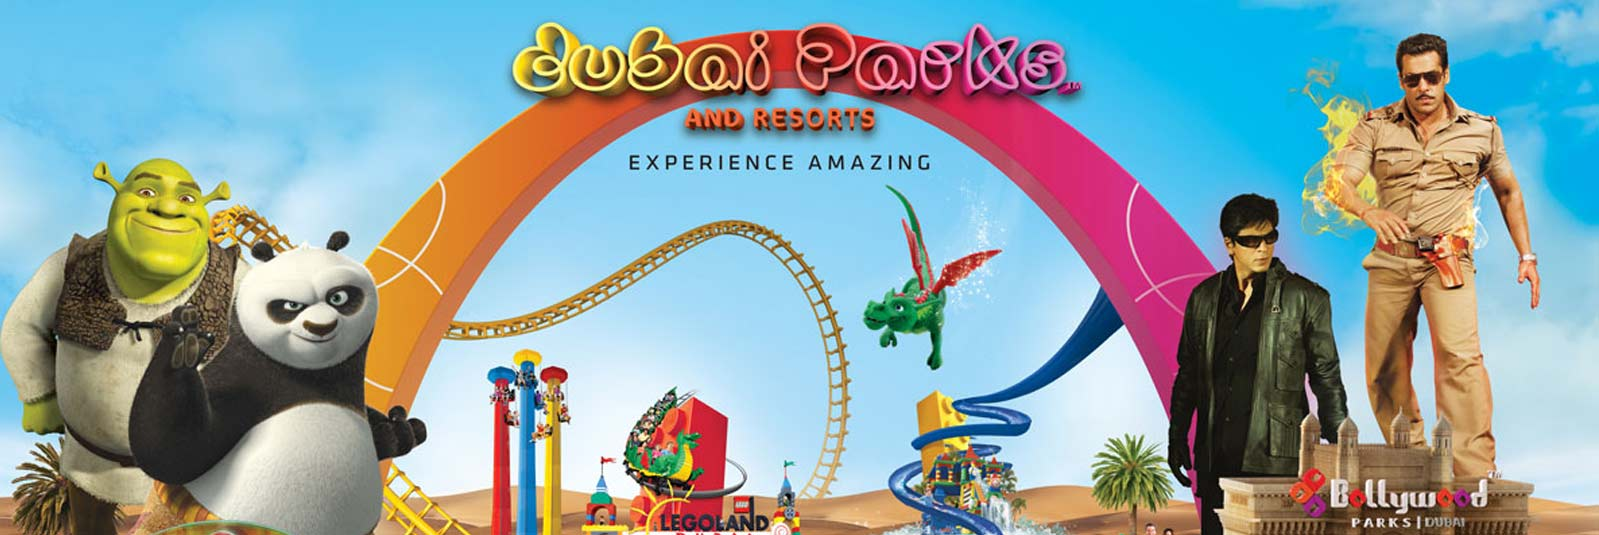 Dubai-Bollywood-Park-Tickets.jpg